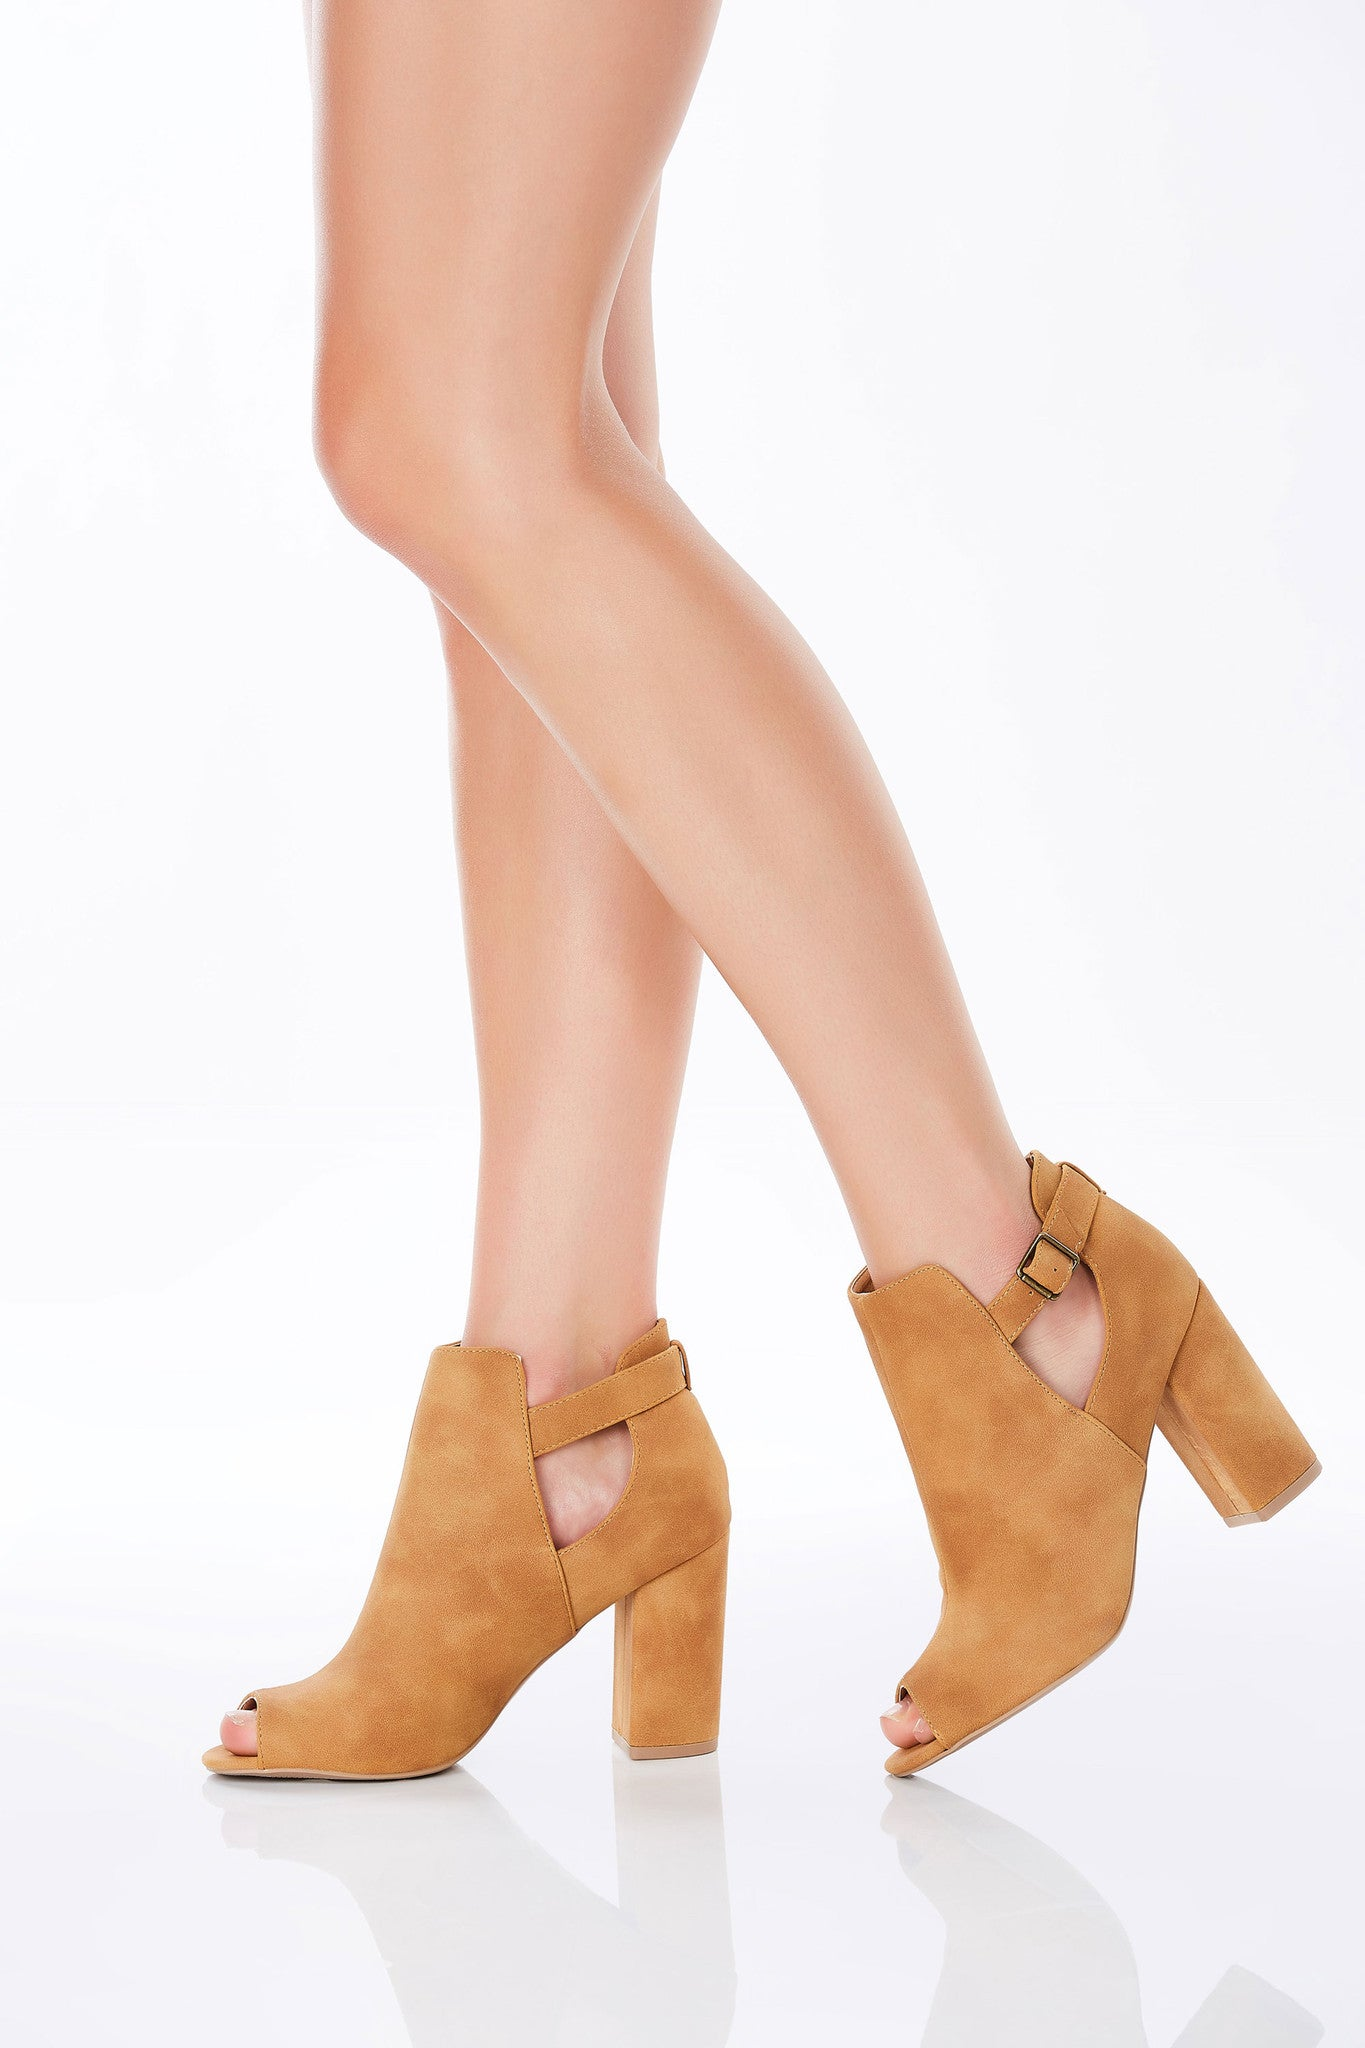 An amazing pair of faux suede booties with great block heels for comfortable wear. Features peep toe and chic cut outs with a classic buckled ankle strap. Pair with distressed denims to upgrade any casual outfit!